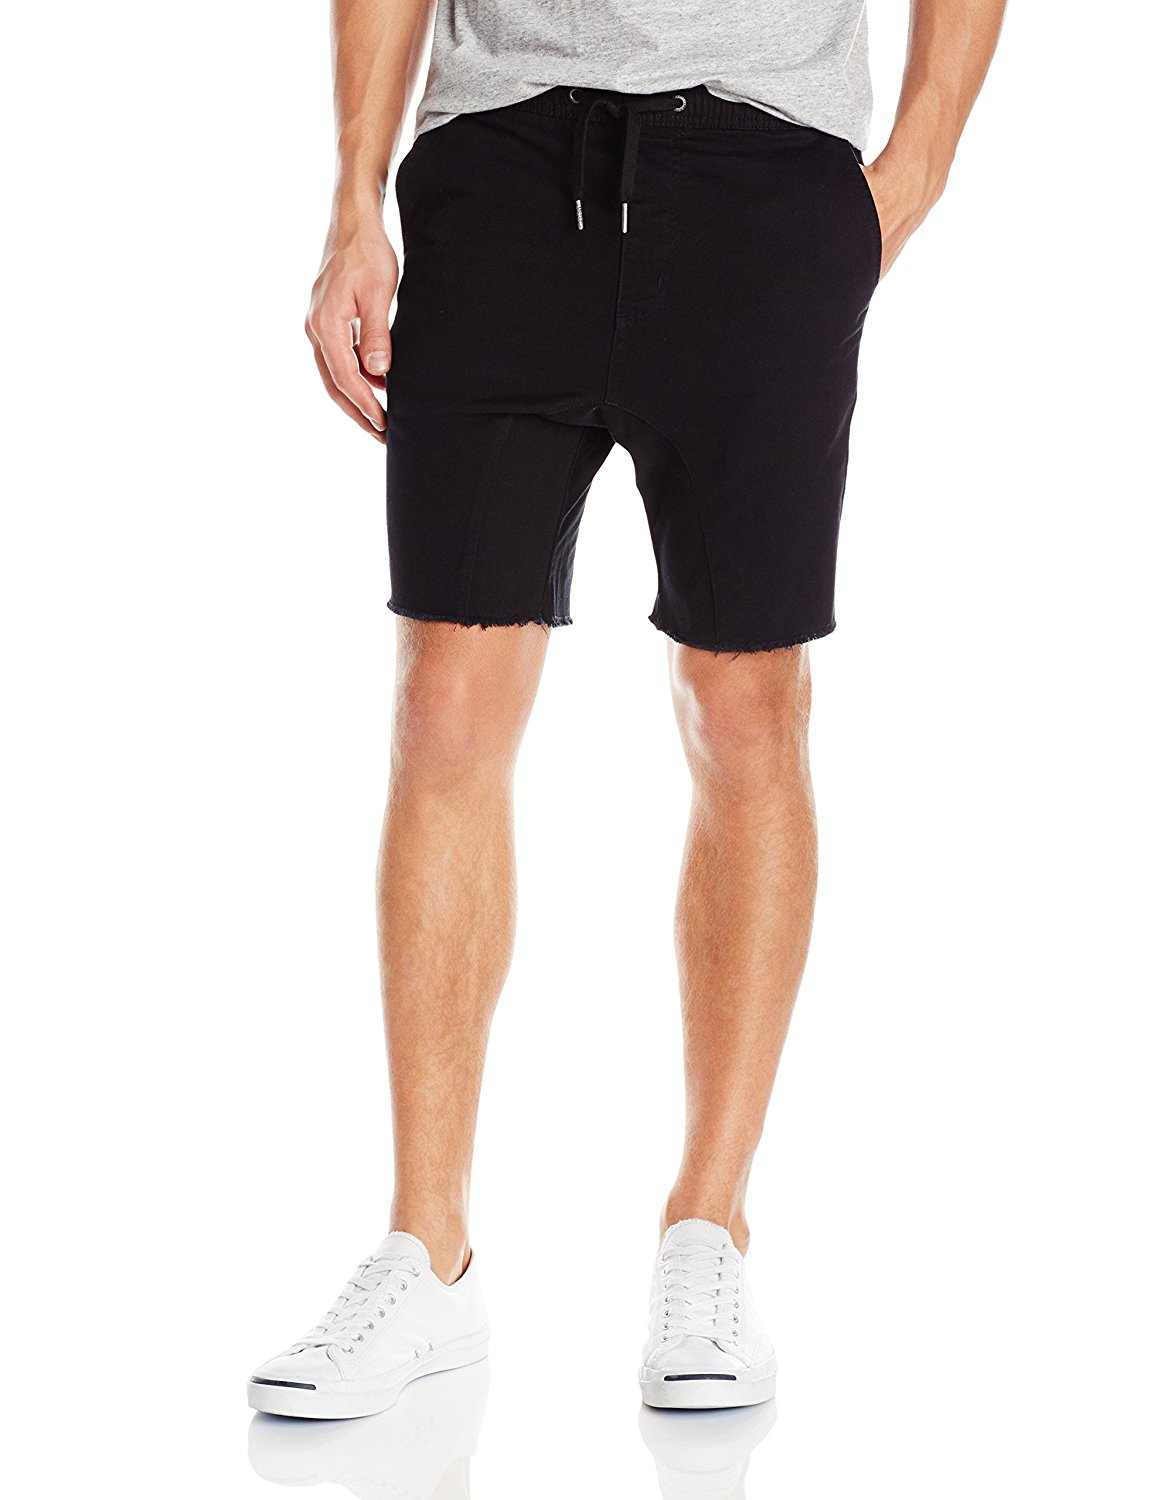 642b472a61 Cheap Fred Perry Chino Shorts, find Fred Perry Chino Shorts deals on ...